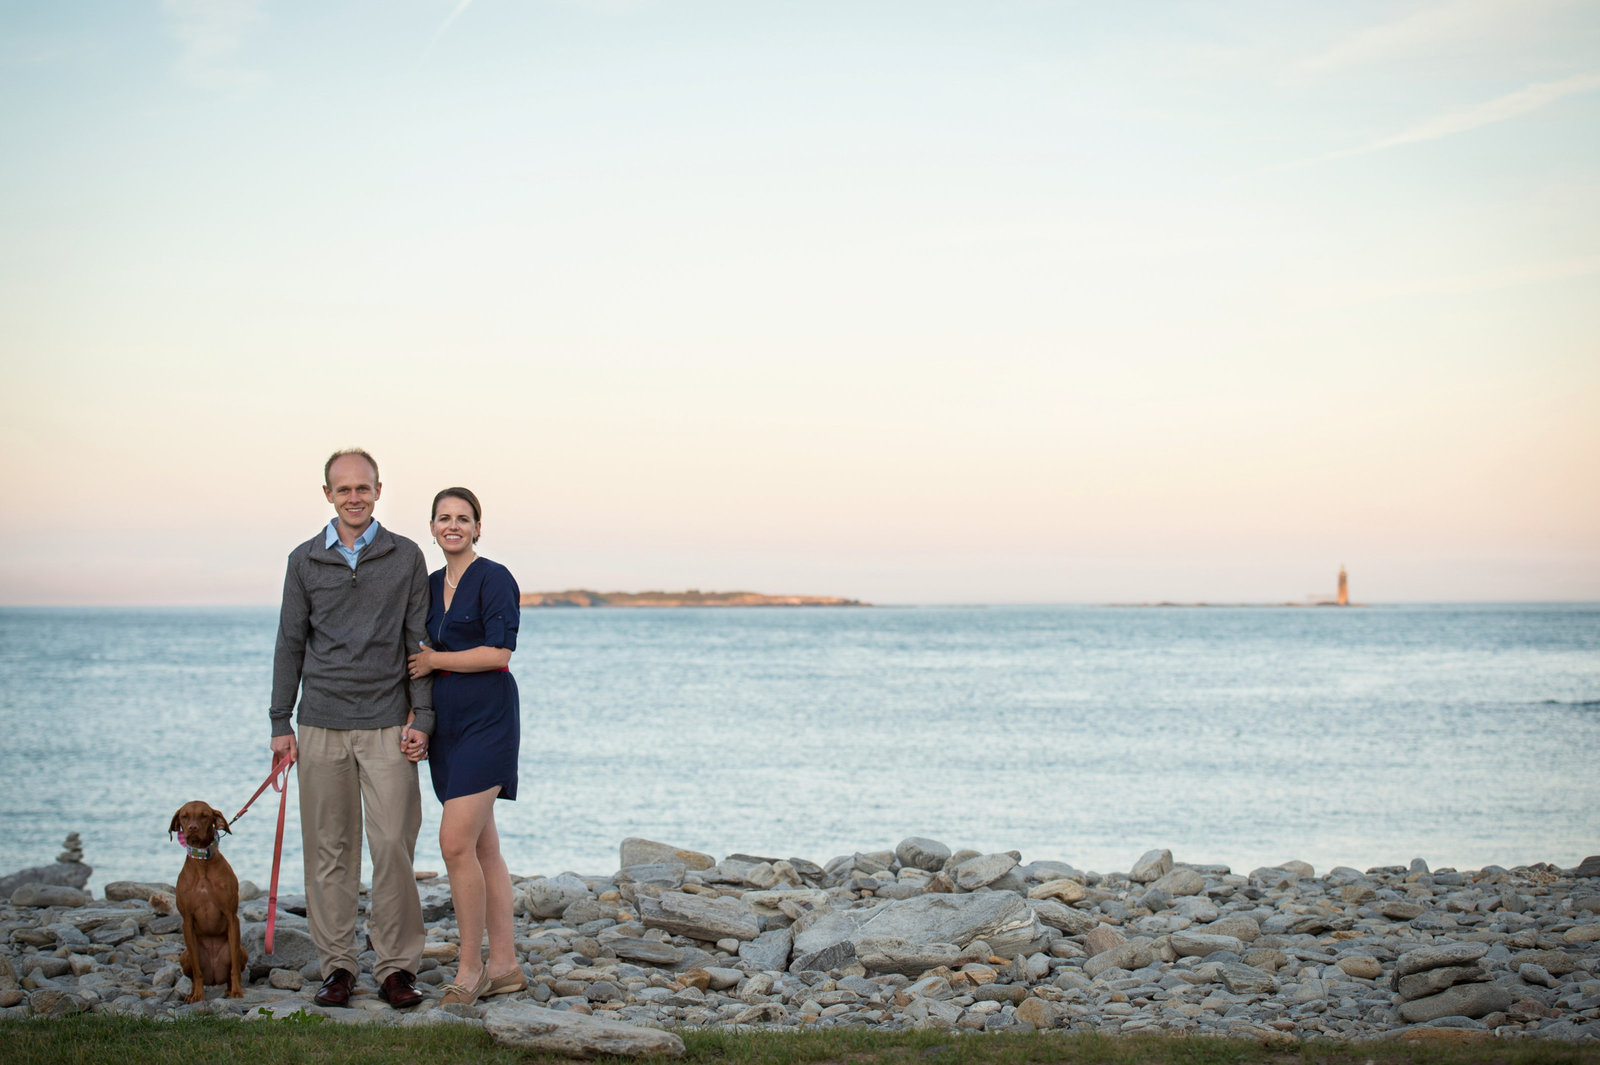 Maine Wedding Photographer, Engagement Photographer, Costa Rica Wedding Photographer-2